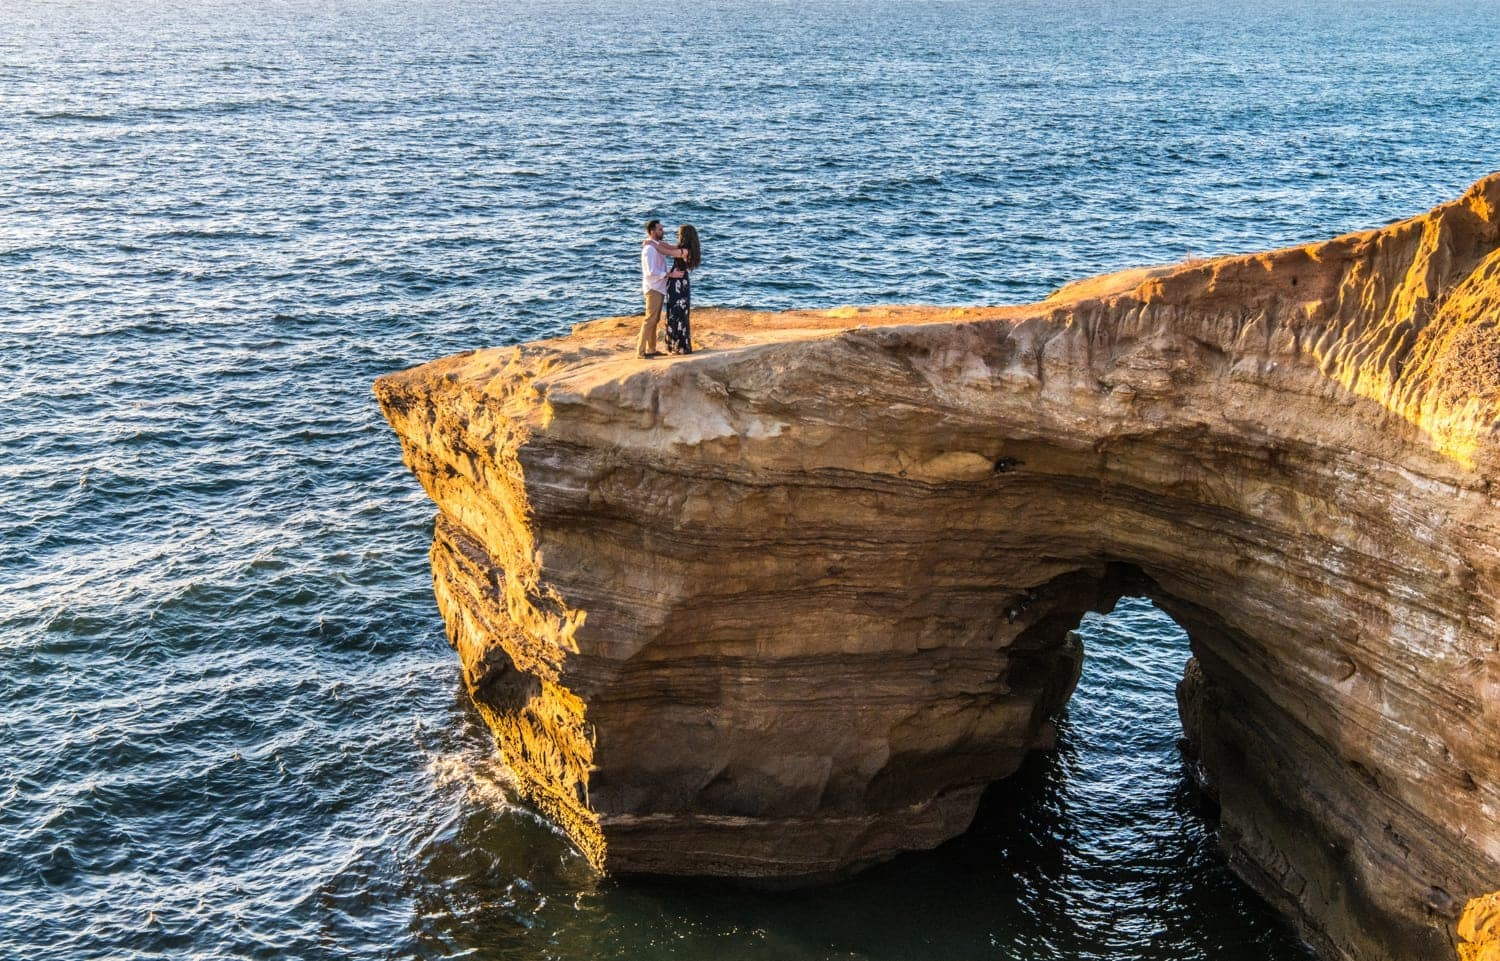 Engagement photography at Sunset Cliffs in San Diego.